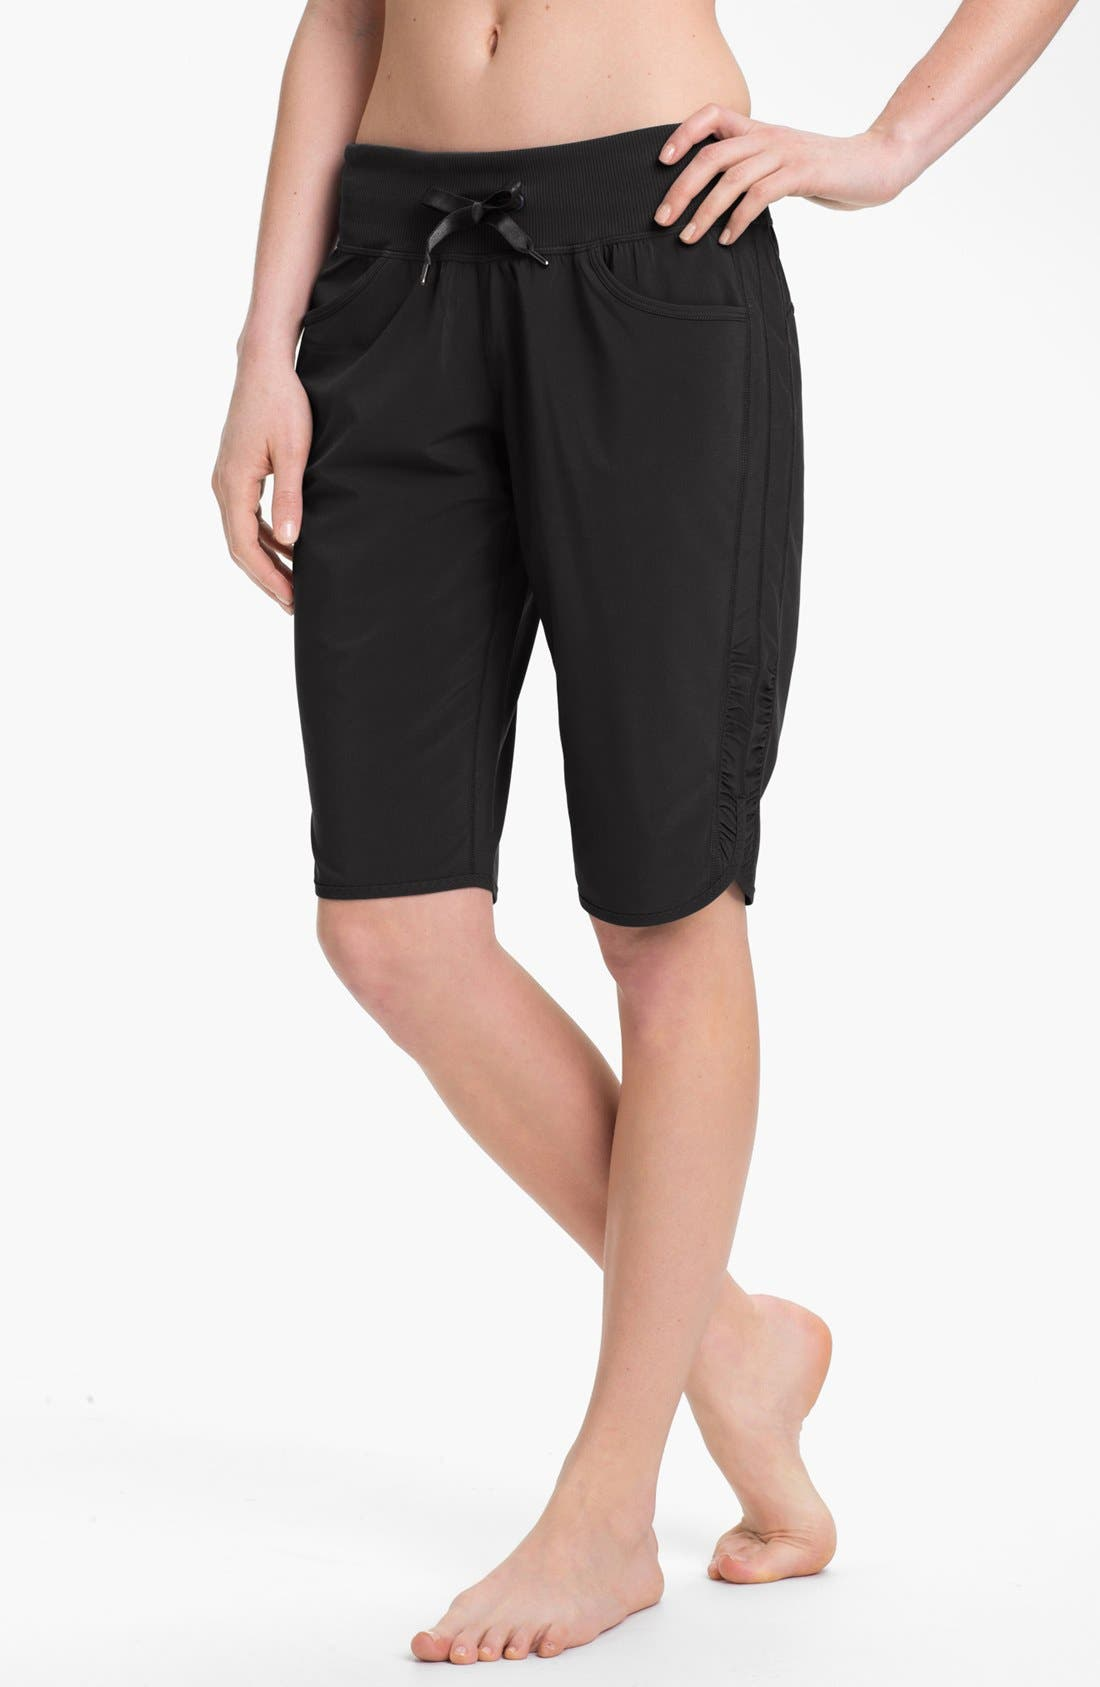 Alternate Image 1 Selected - Zella 'City' Shorts (Online Only)